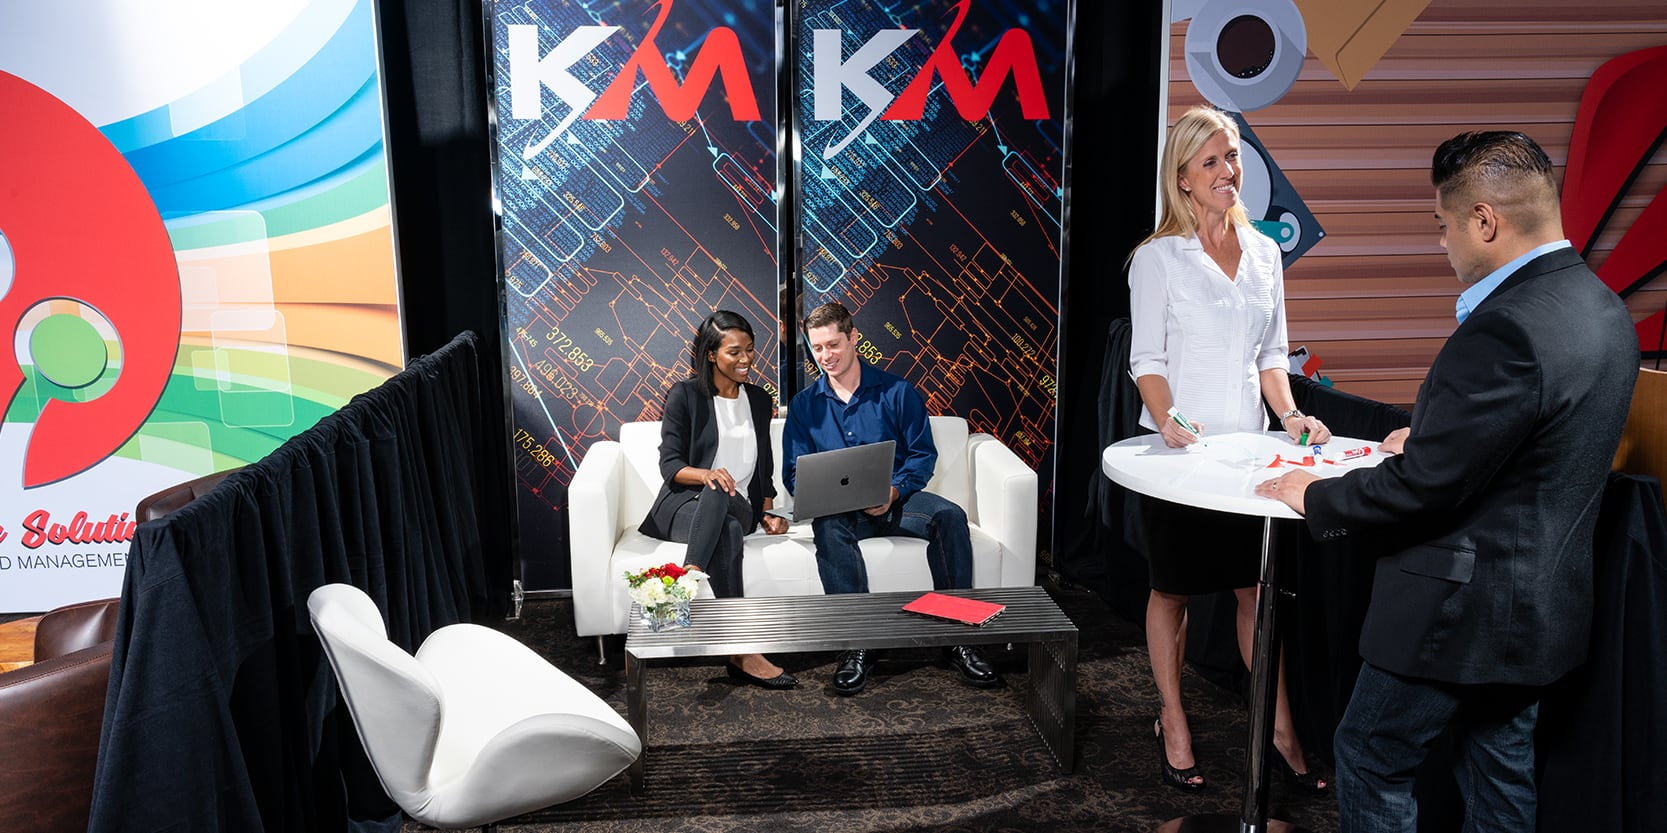 small trade show booth with white furniture rentals and employees talking to clients